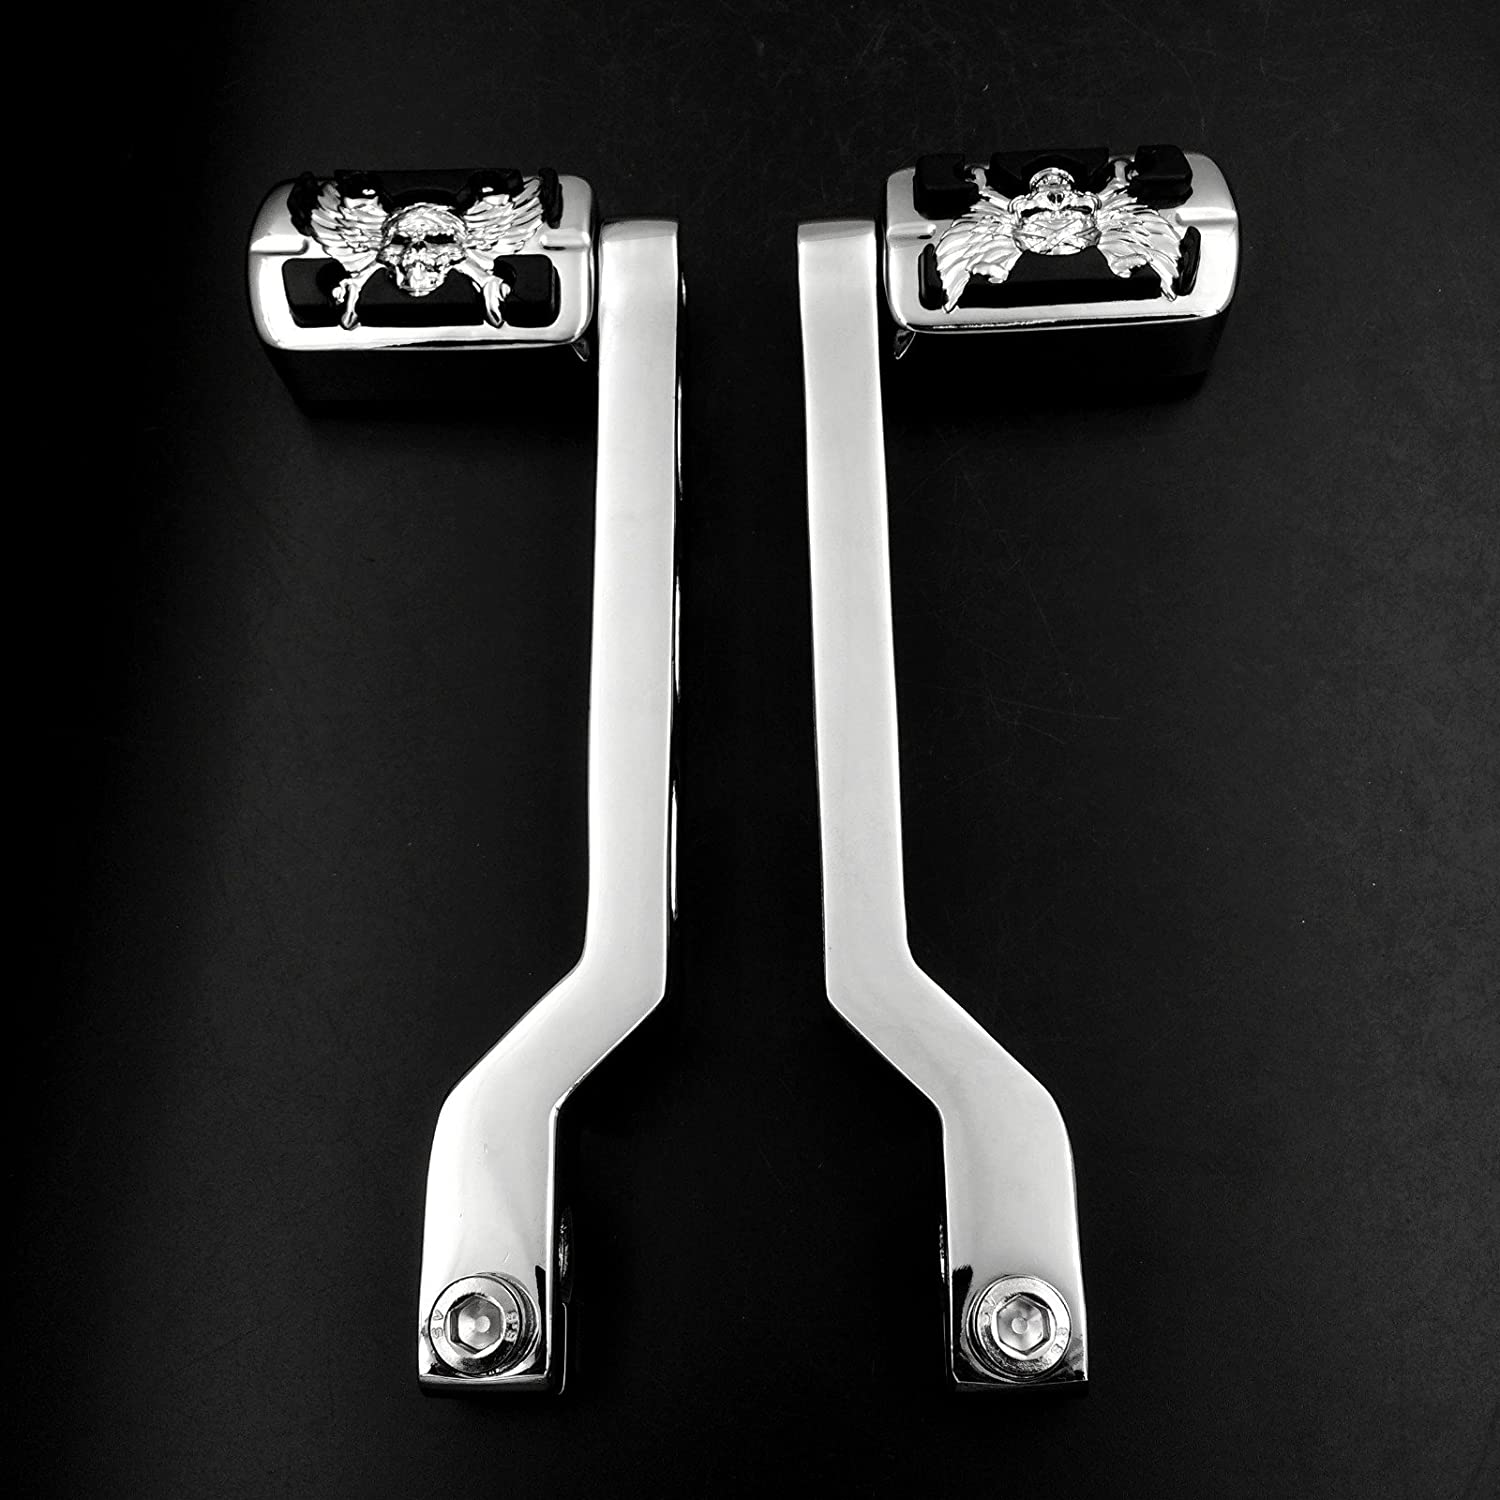 B013QAQW2U XKMT-Gear Shift Wing Skull Zombie Emblem Foot Lever pegs Compatible With Harley Softail Tour Electra Glide FLTS Heel Toe Chrome